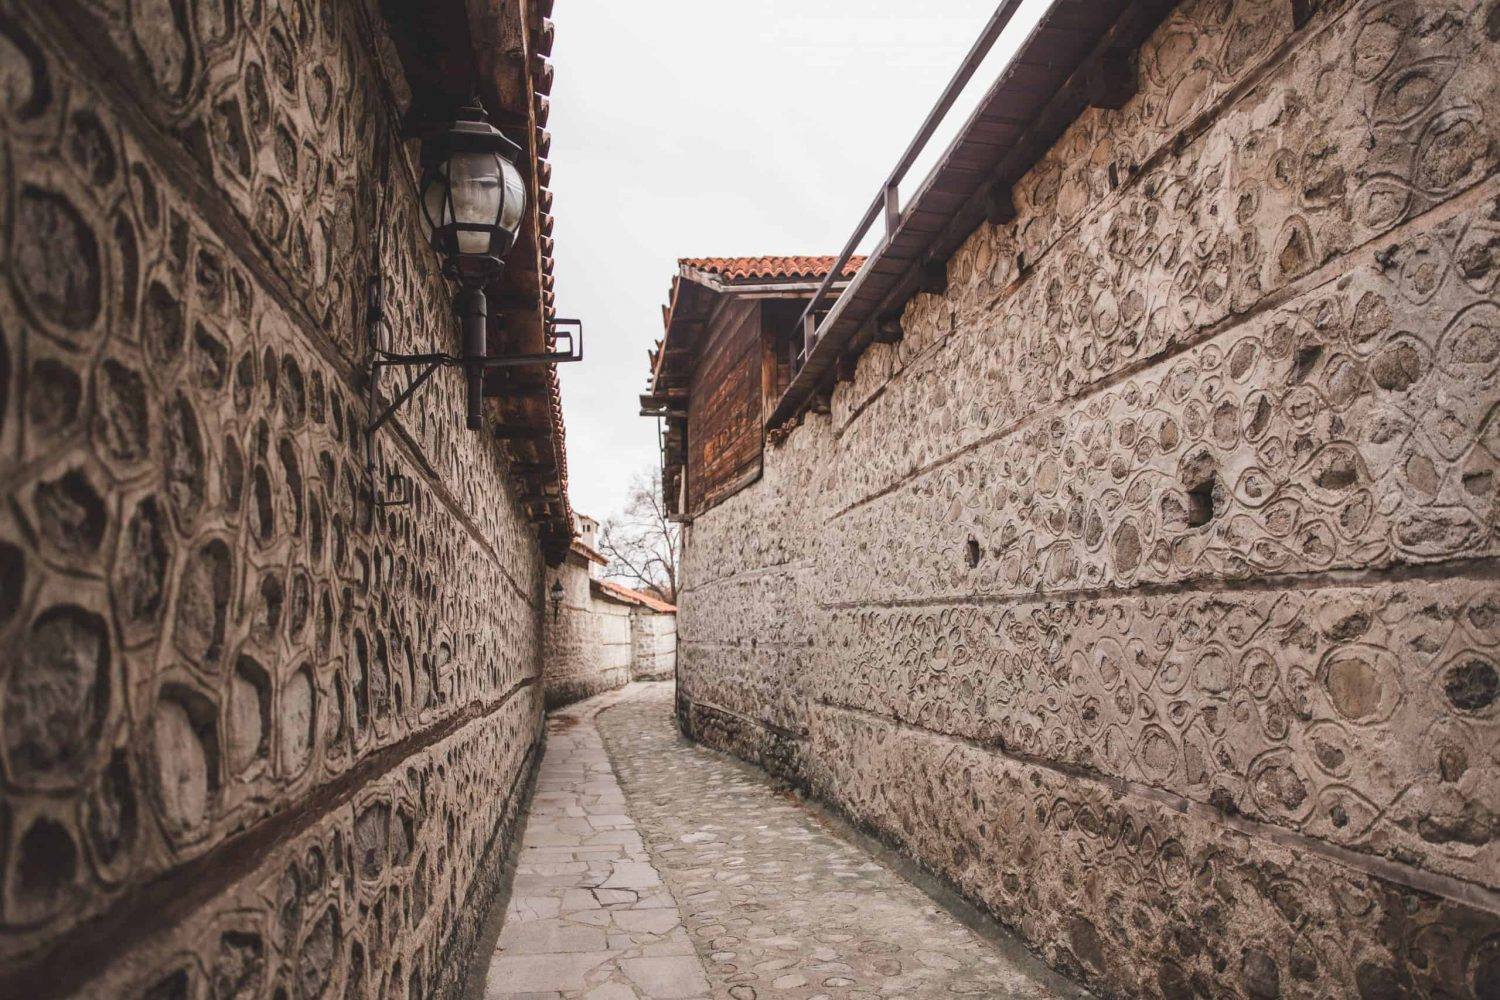 Cobblestone streets and stone walls in Bansko, Bulgaria's Old Town.